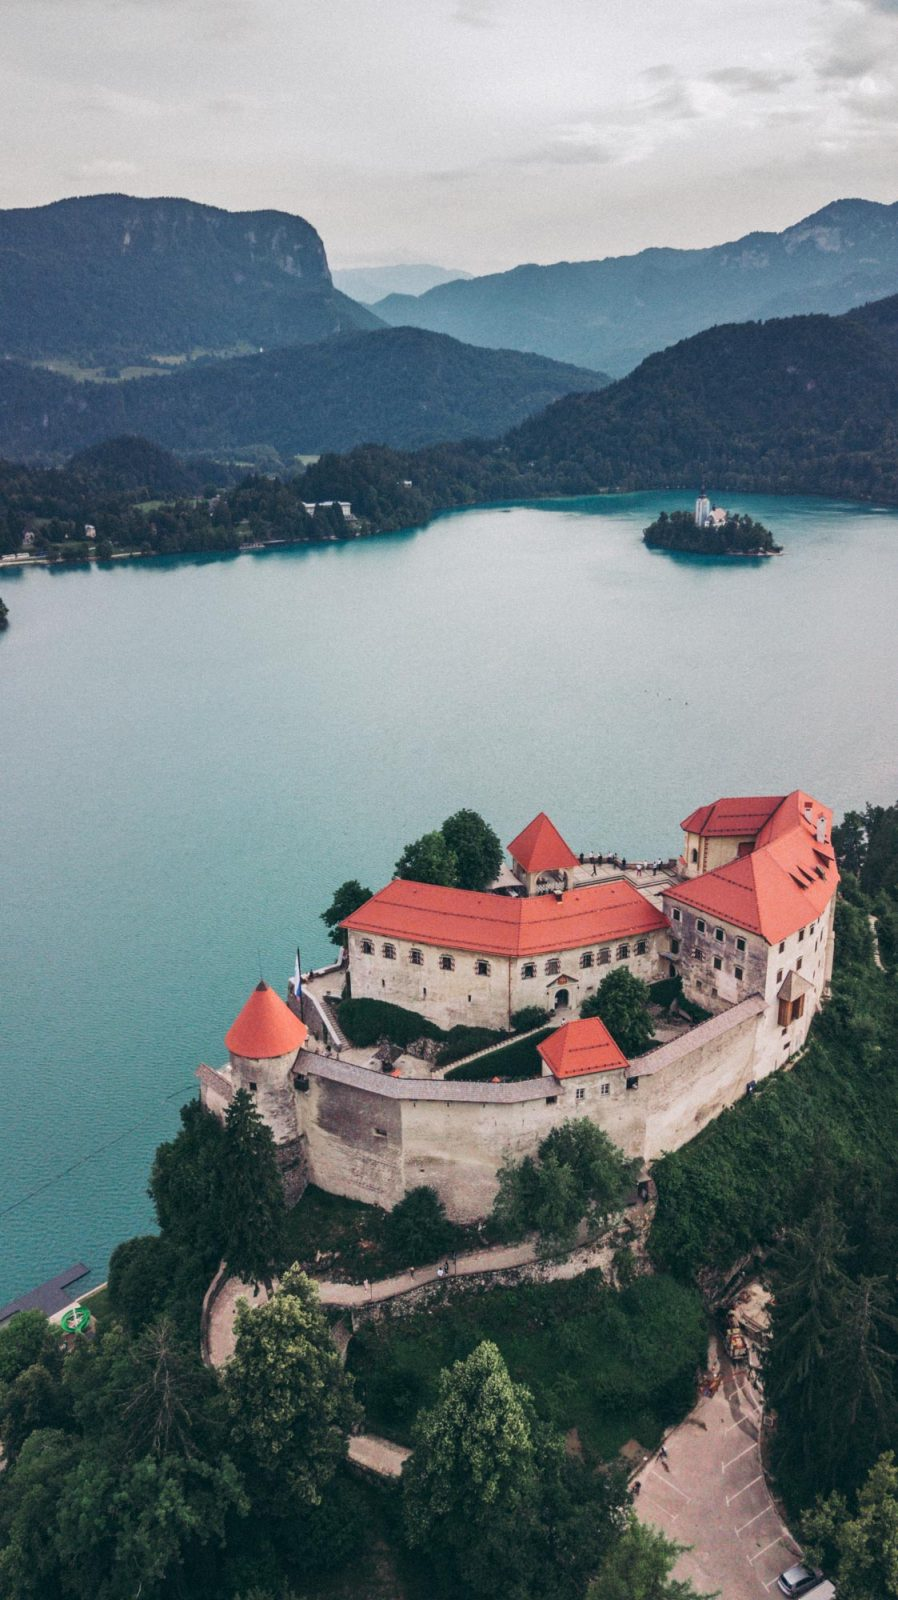 things to do in slovenia on holiday: Lake Bled